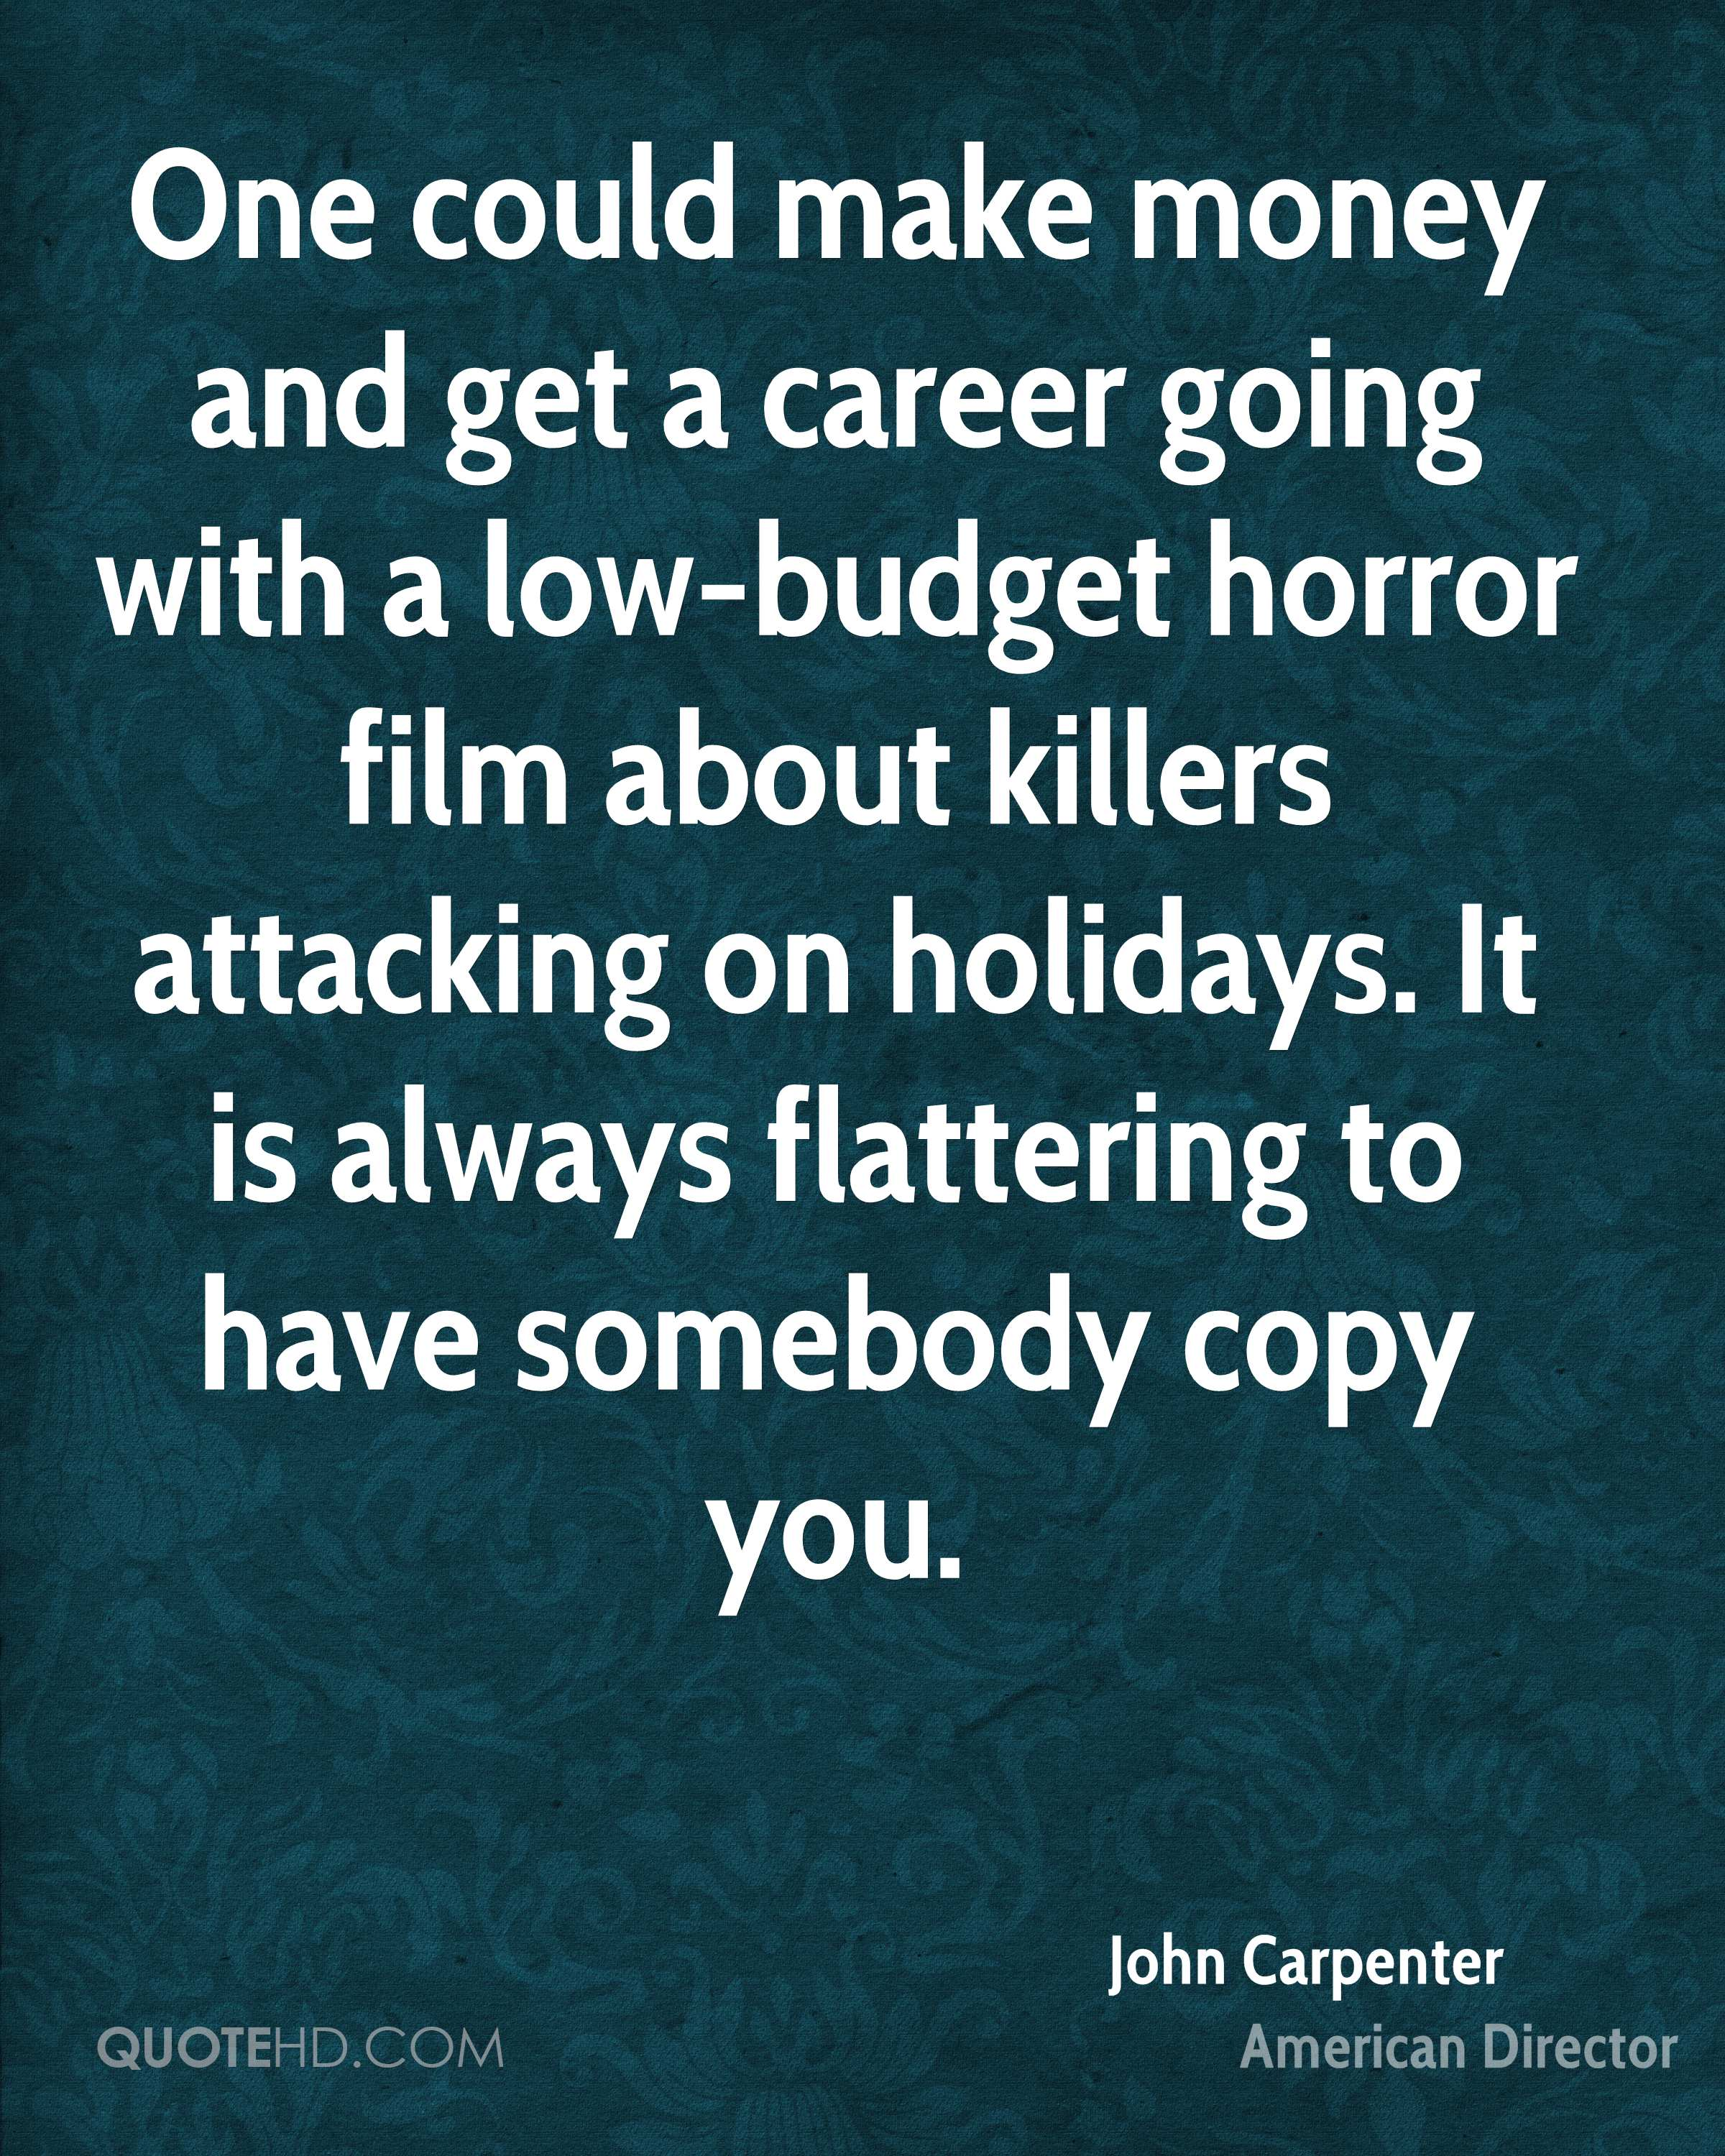 One could make money and get a career going with a low-budget horror film about killers attacking on holidays. It is always flattering to have somebody copy you.